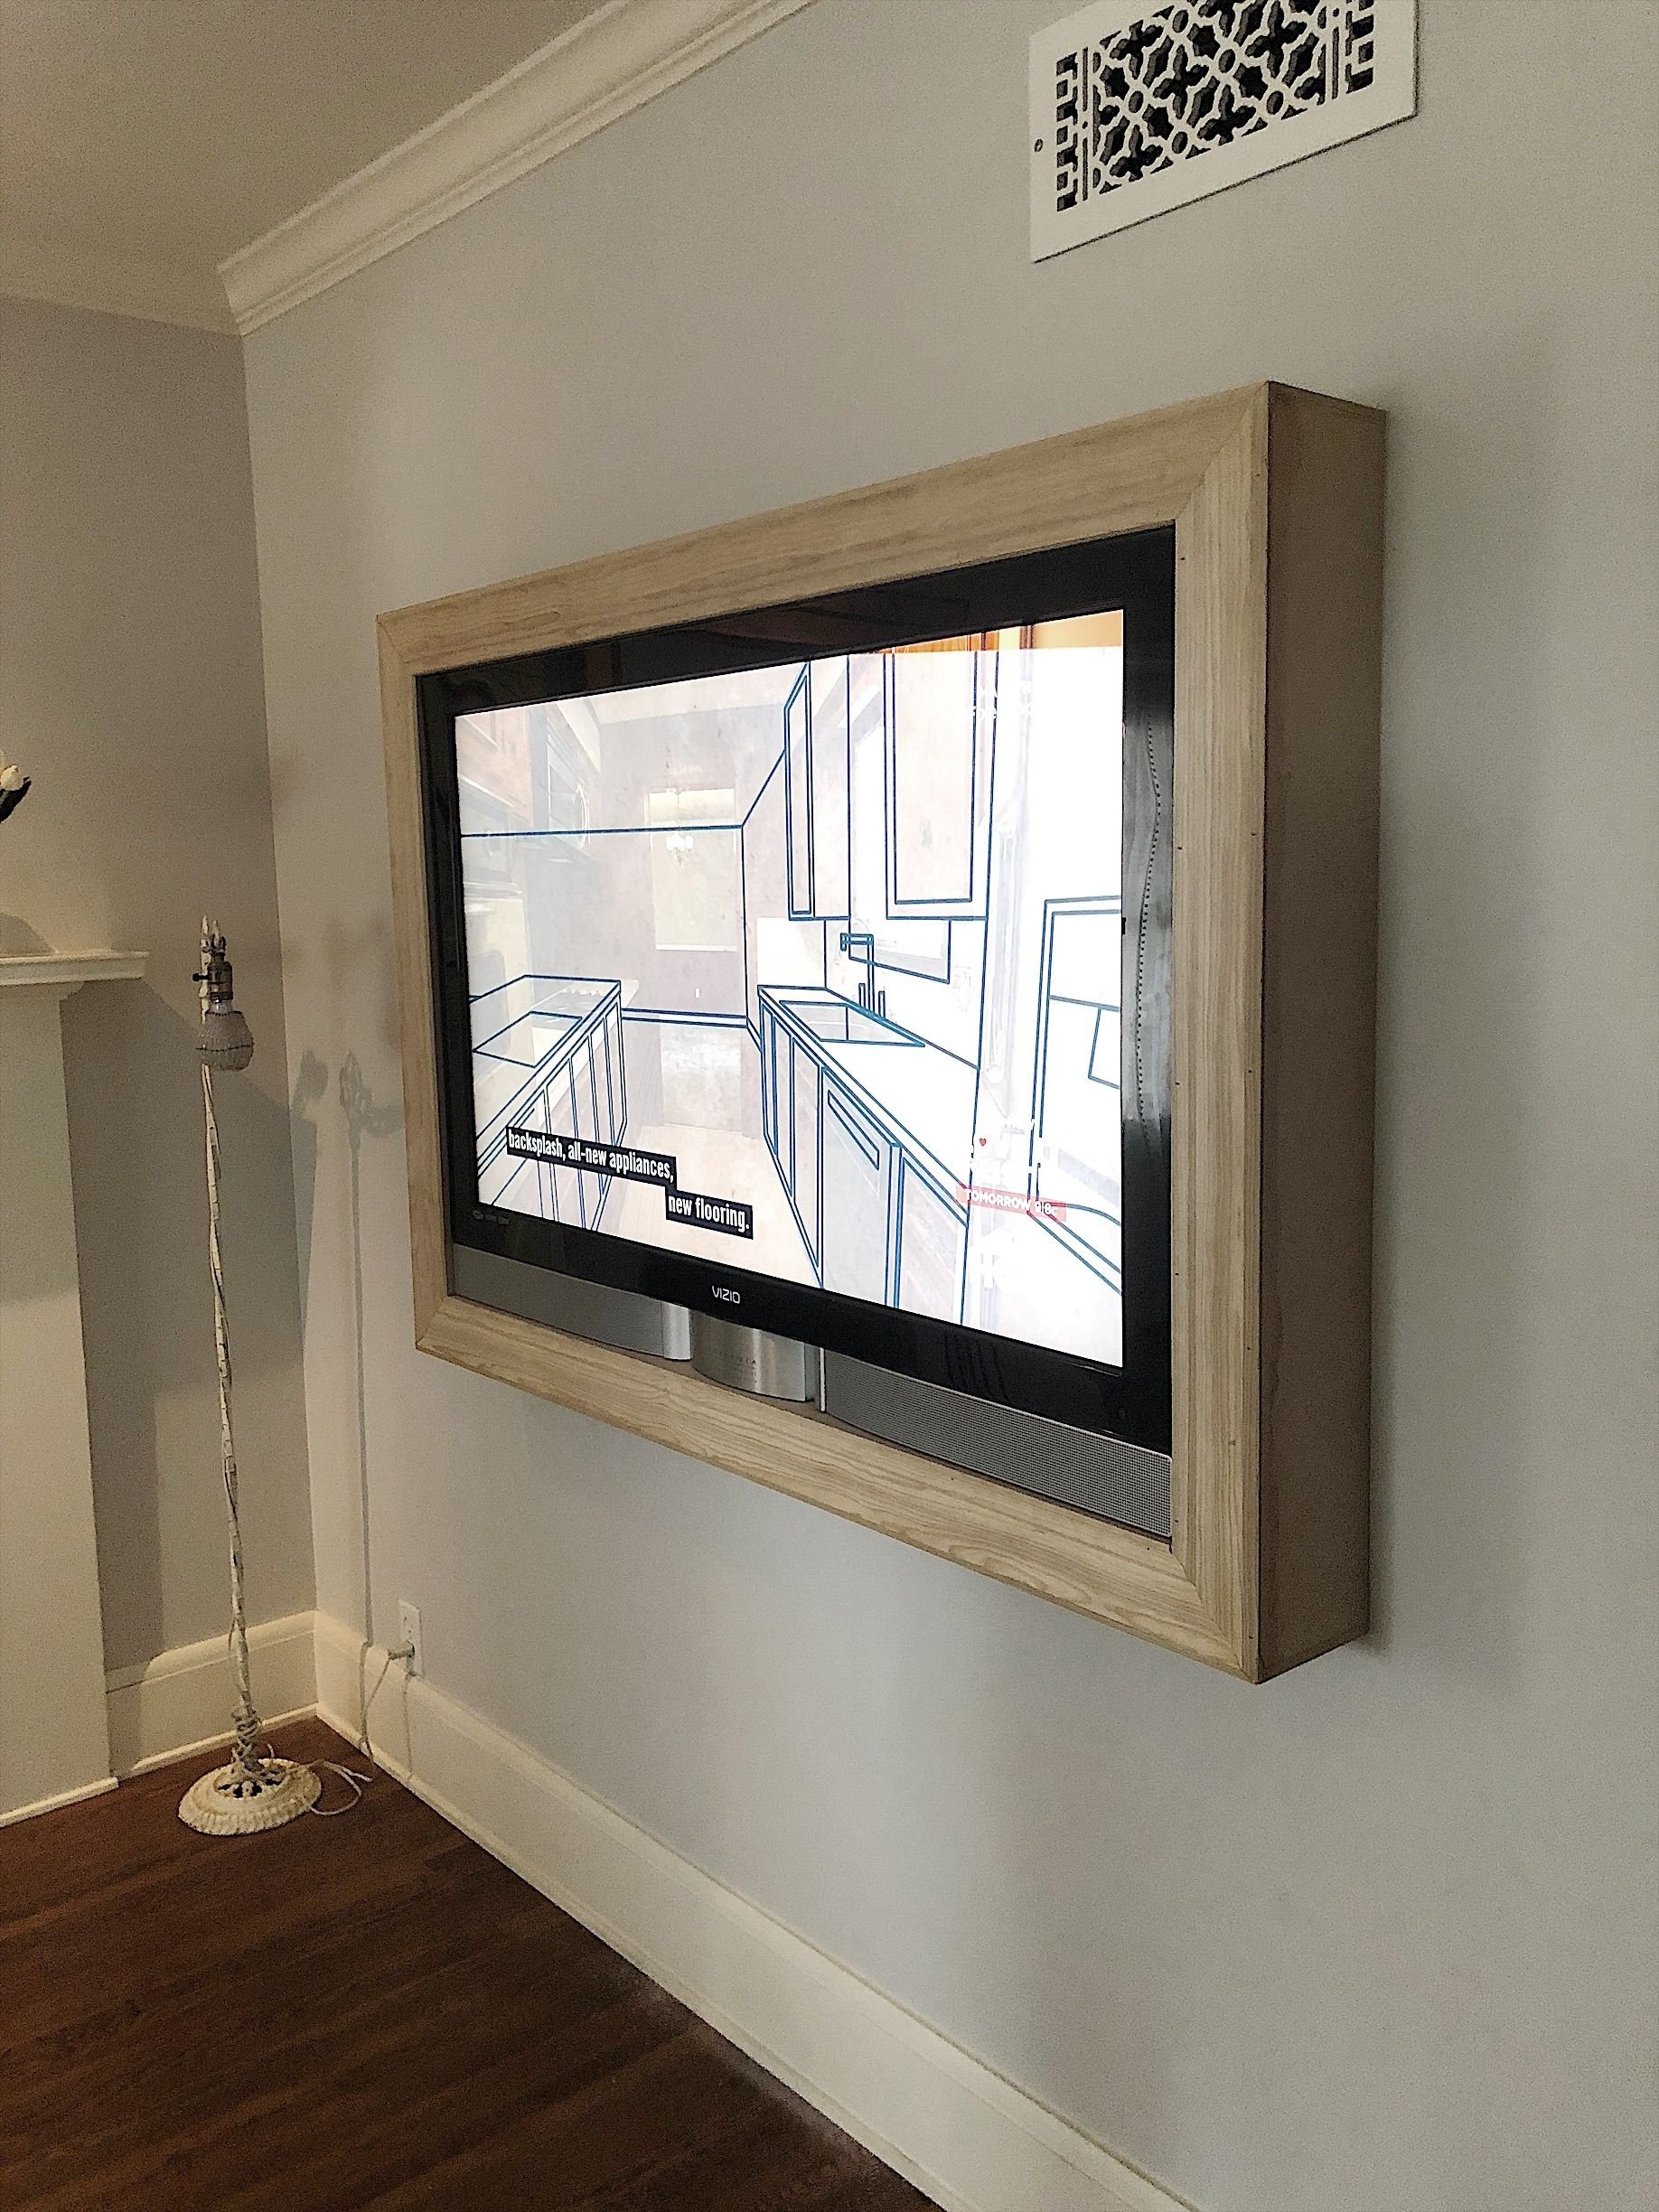 Five Steps To Build A Frame For A Wall Mounted Tv Mounted Tv